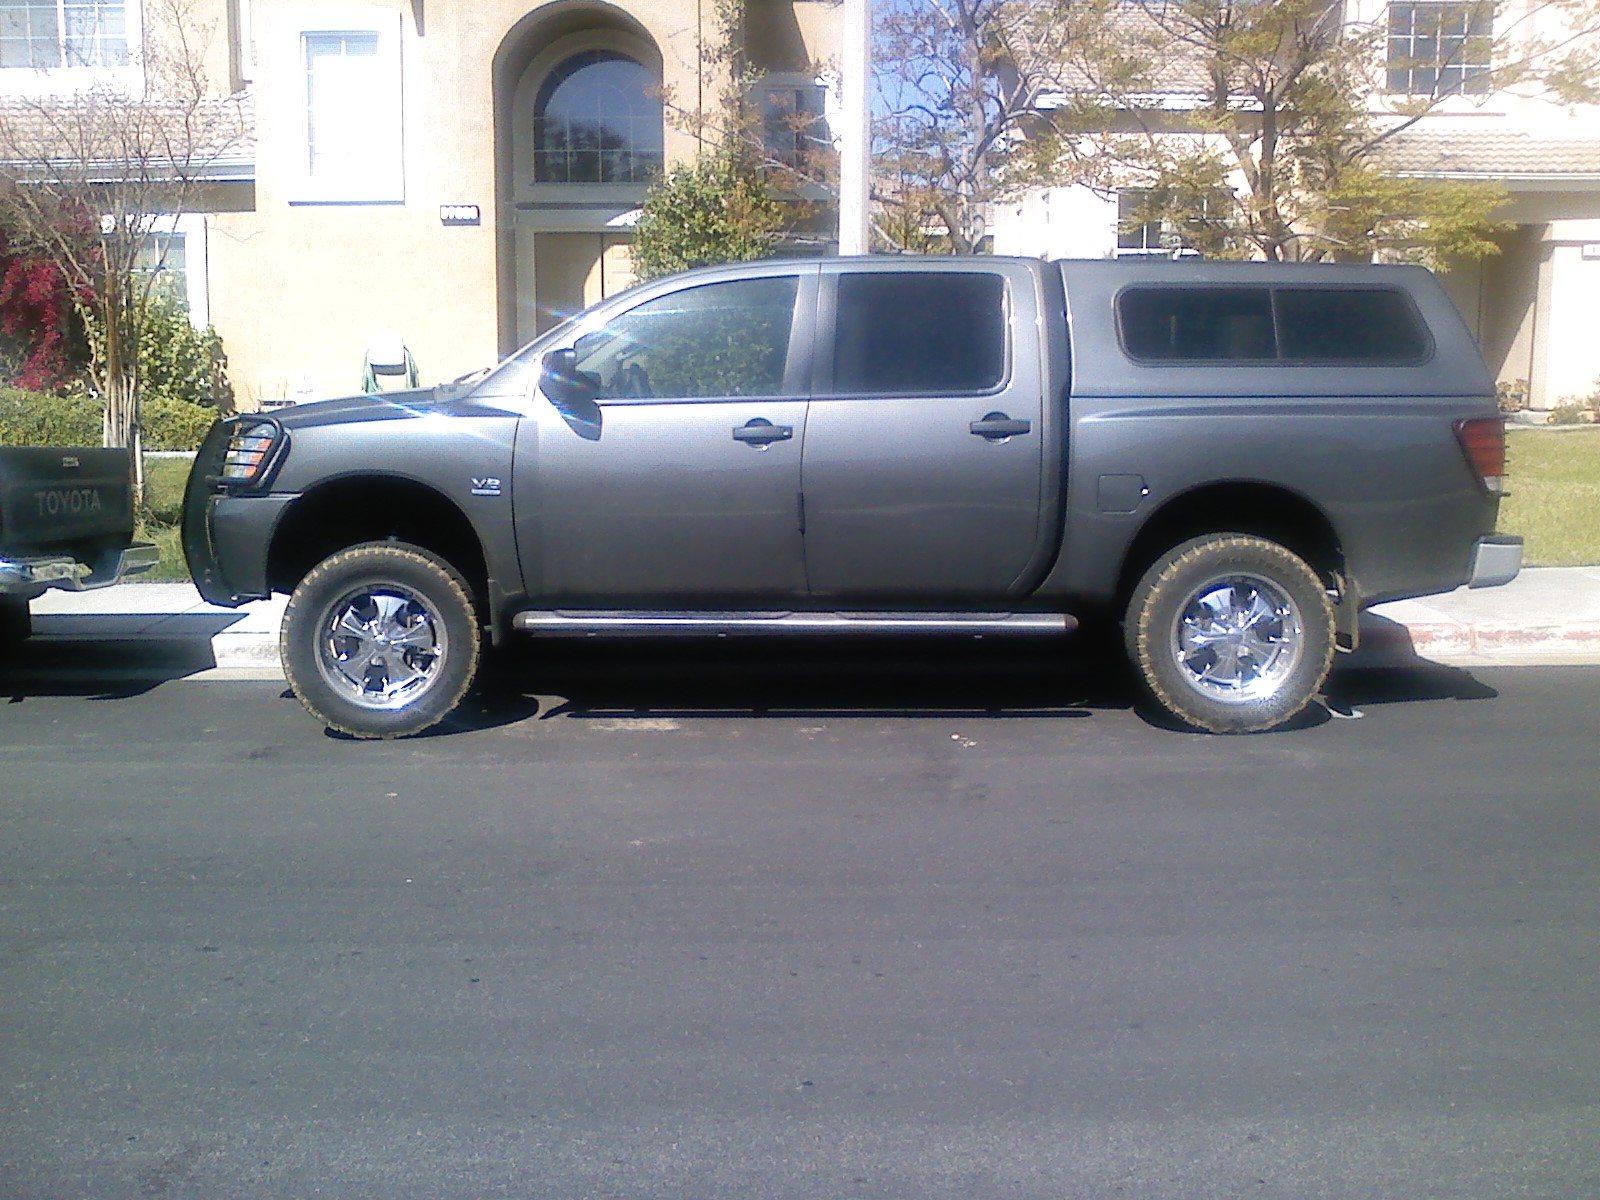 Old Truck For Sale >> FOR SALE: camper shell and rims - Page 2 - Nissan Titan Forum